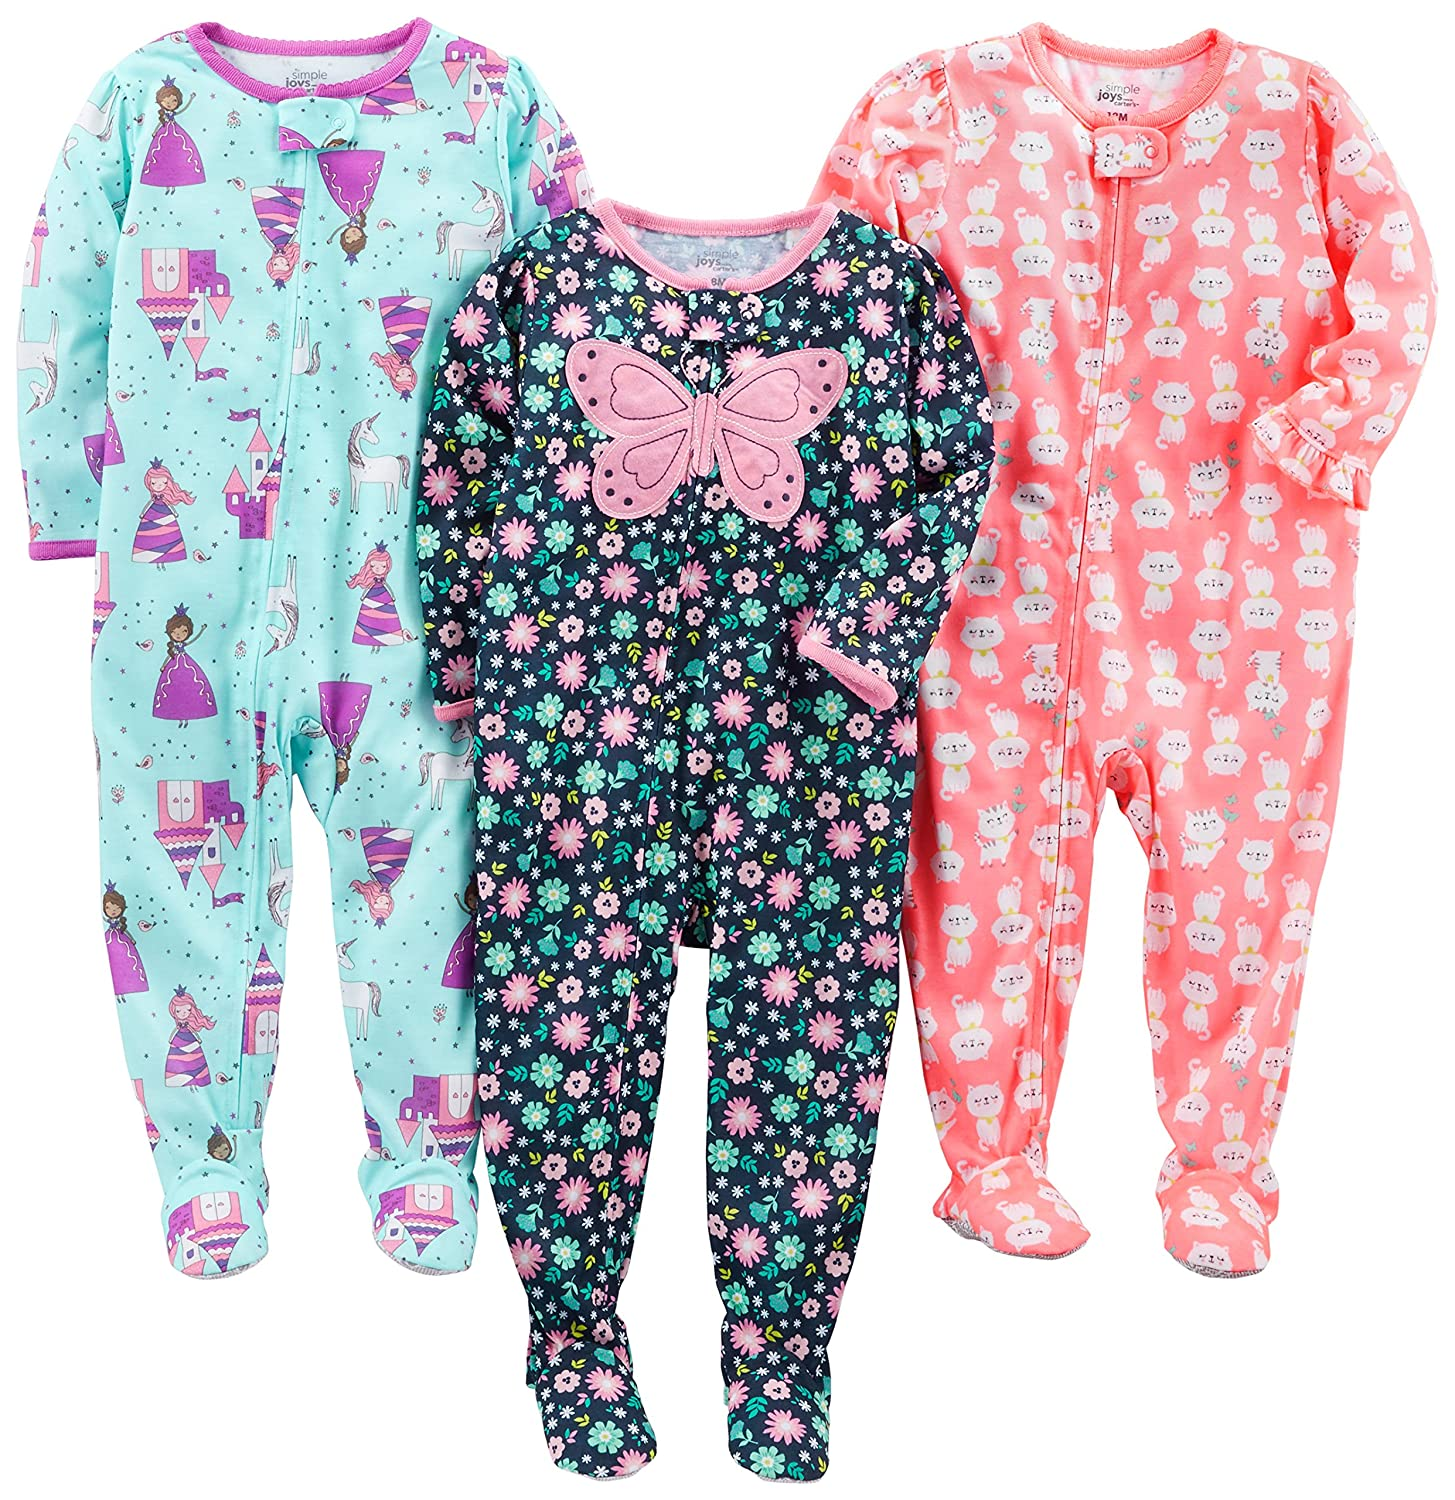 8d741c8cd Amazon.com  Simple Joys by Carter s Baby and Toddler Girls  3-Pack ...